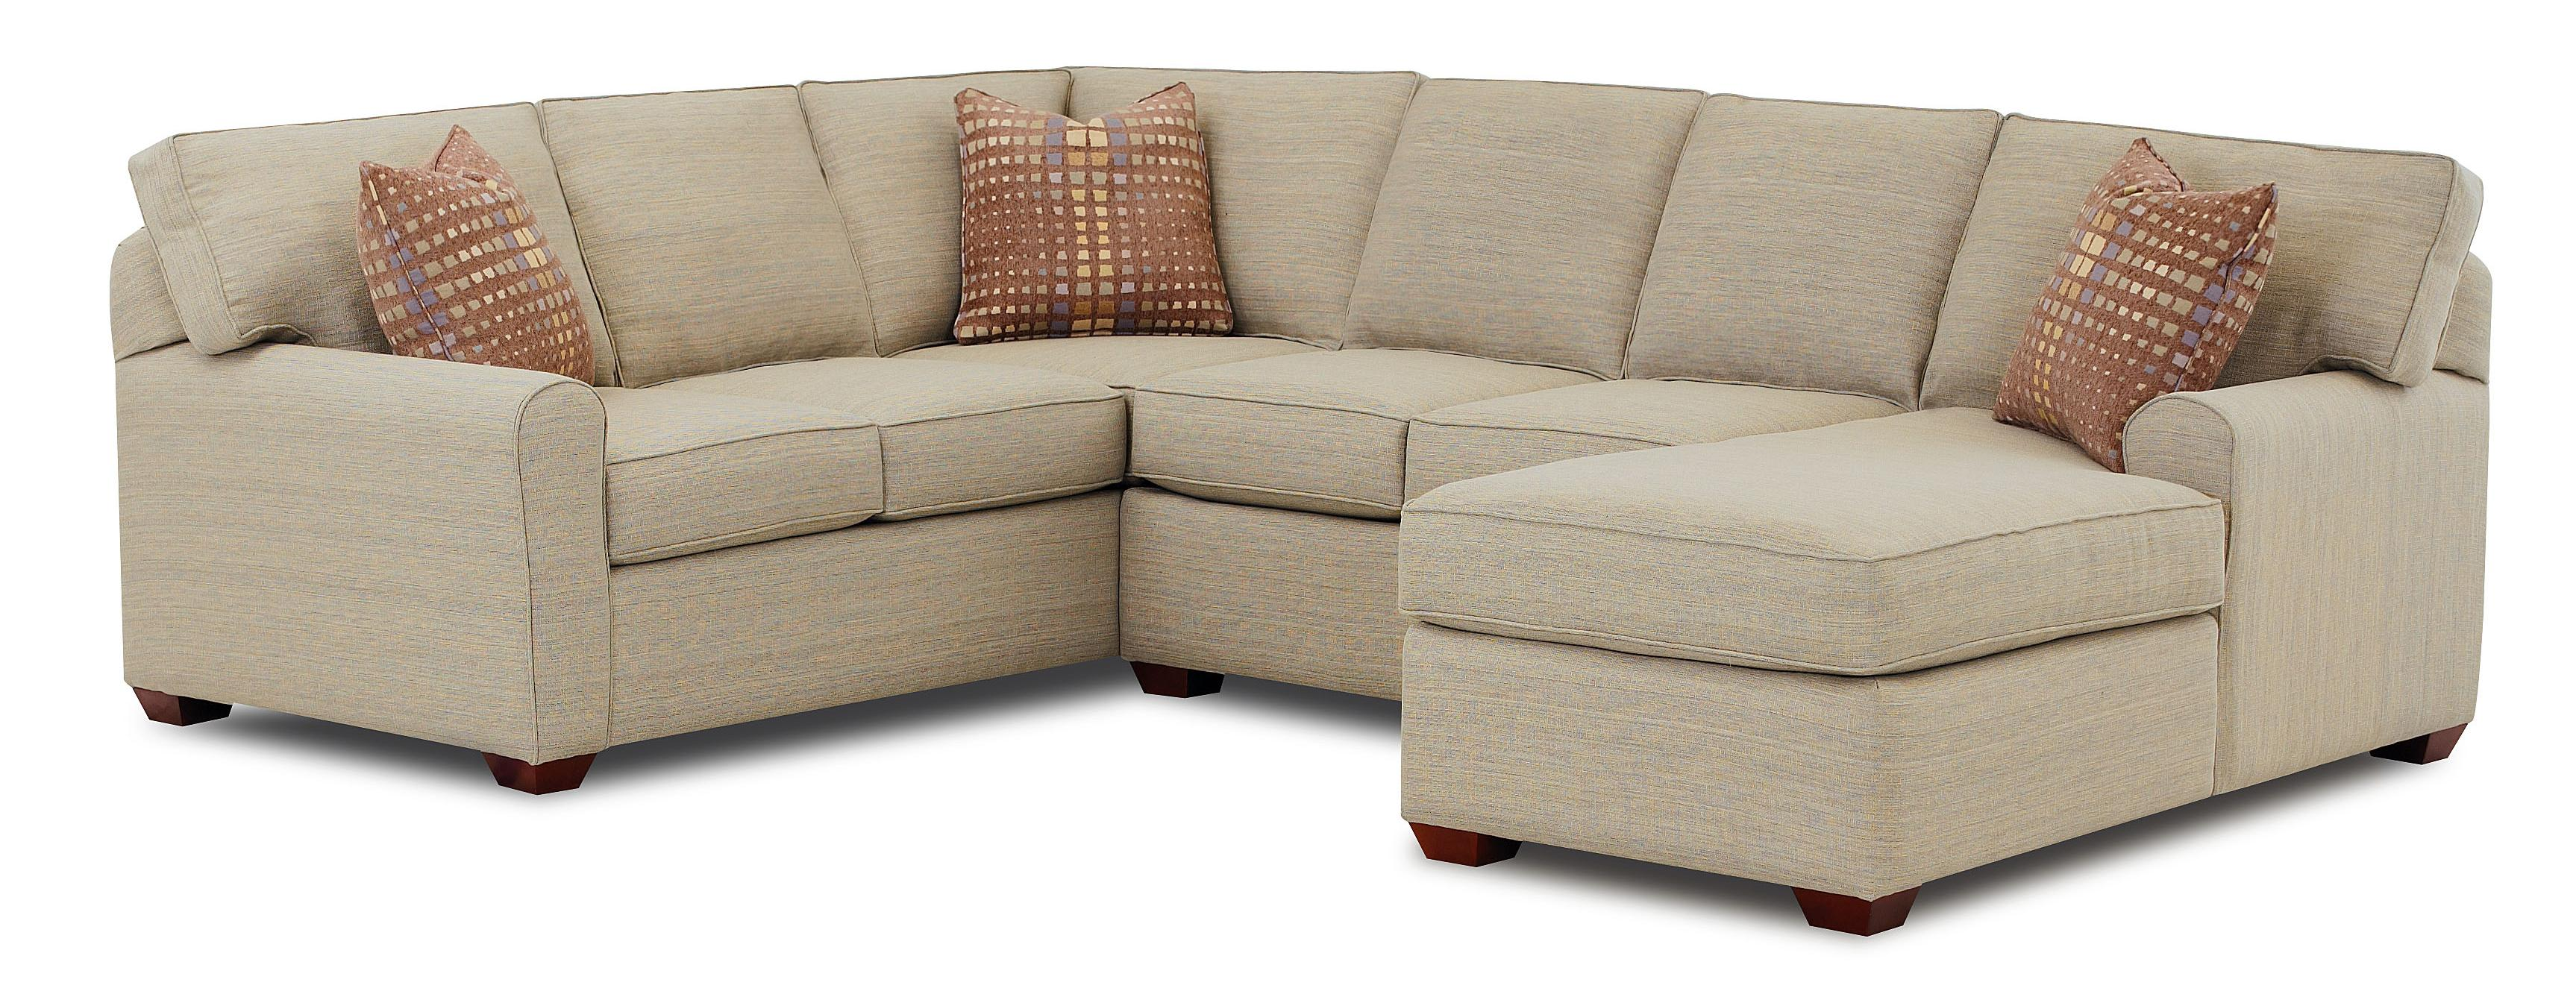 Sectional Sofa with Right Facing Chaise Lounge by Klaussner